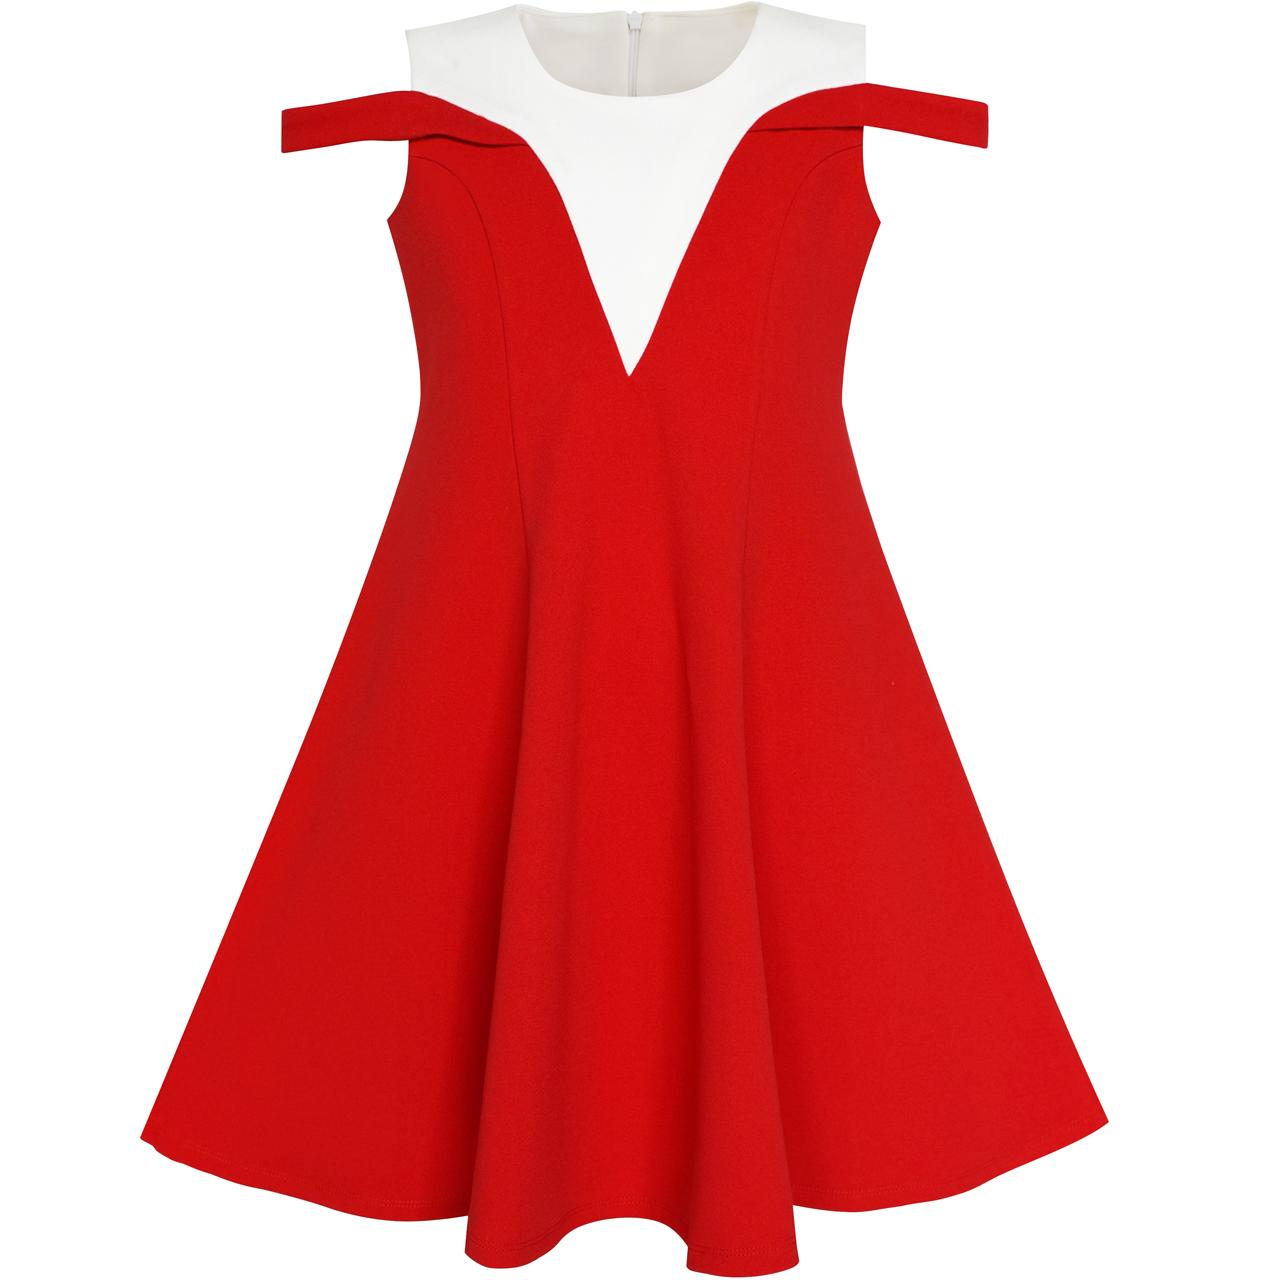 Girls Dress Red White Cold Shoulder Color Contrast Holiday 2018 Summer Princess Wedding Party Dresses Kids Clothes Size 5-12 contrast strap cold shoulder top